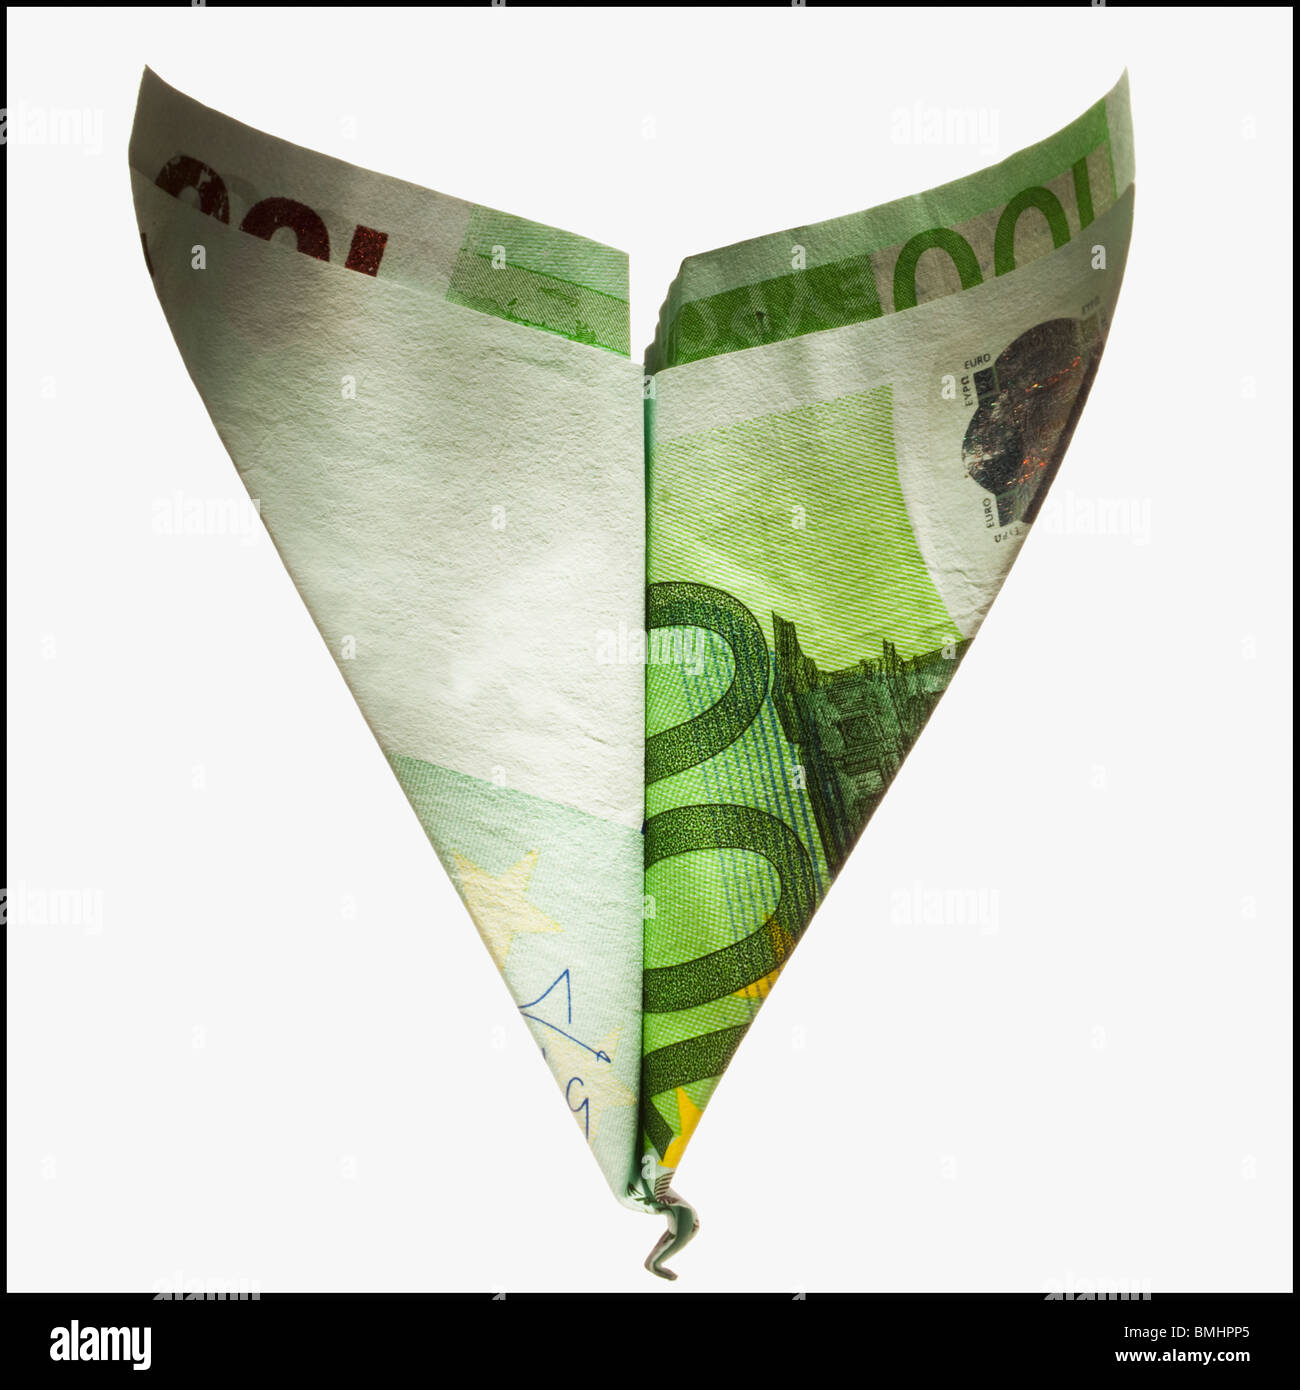 Paper airplane made out of money - Stock Image